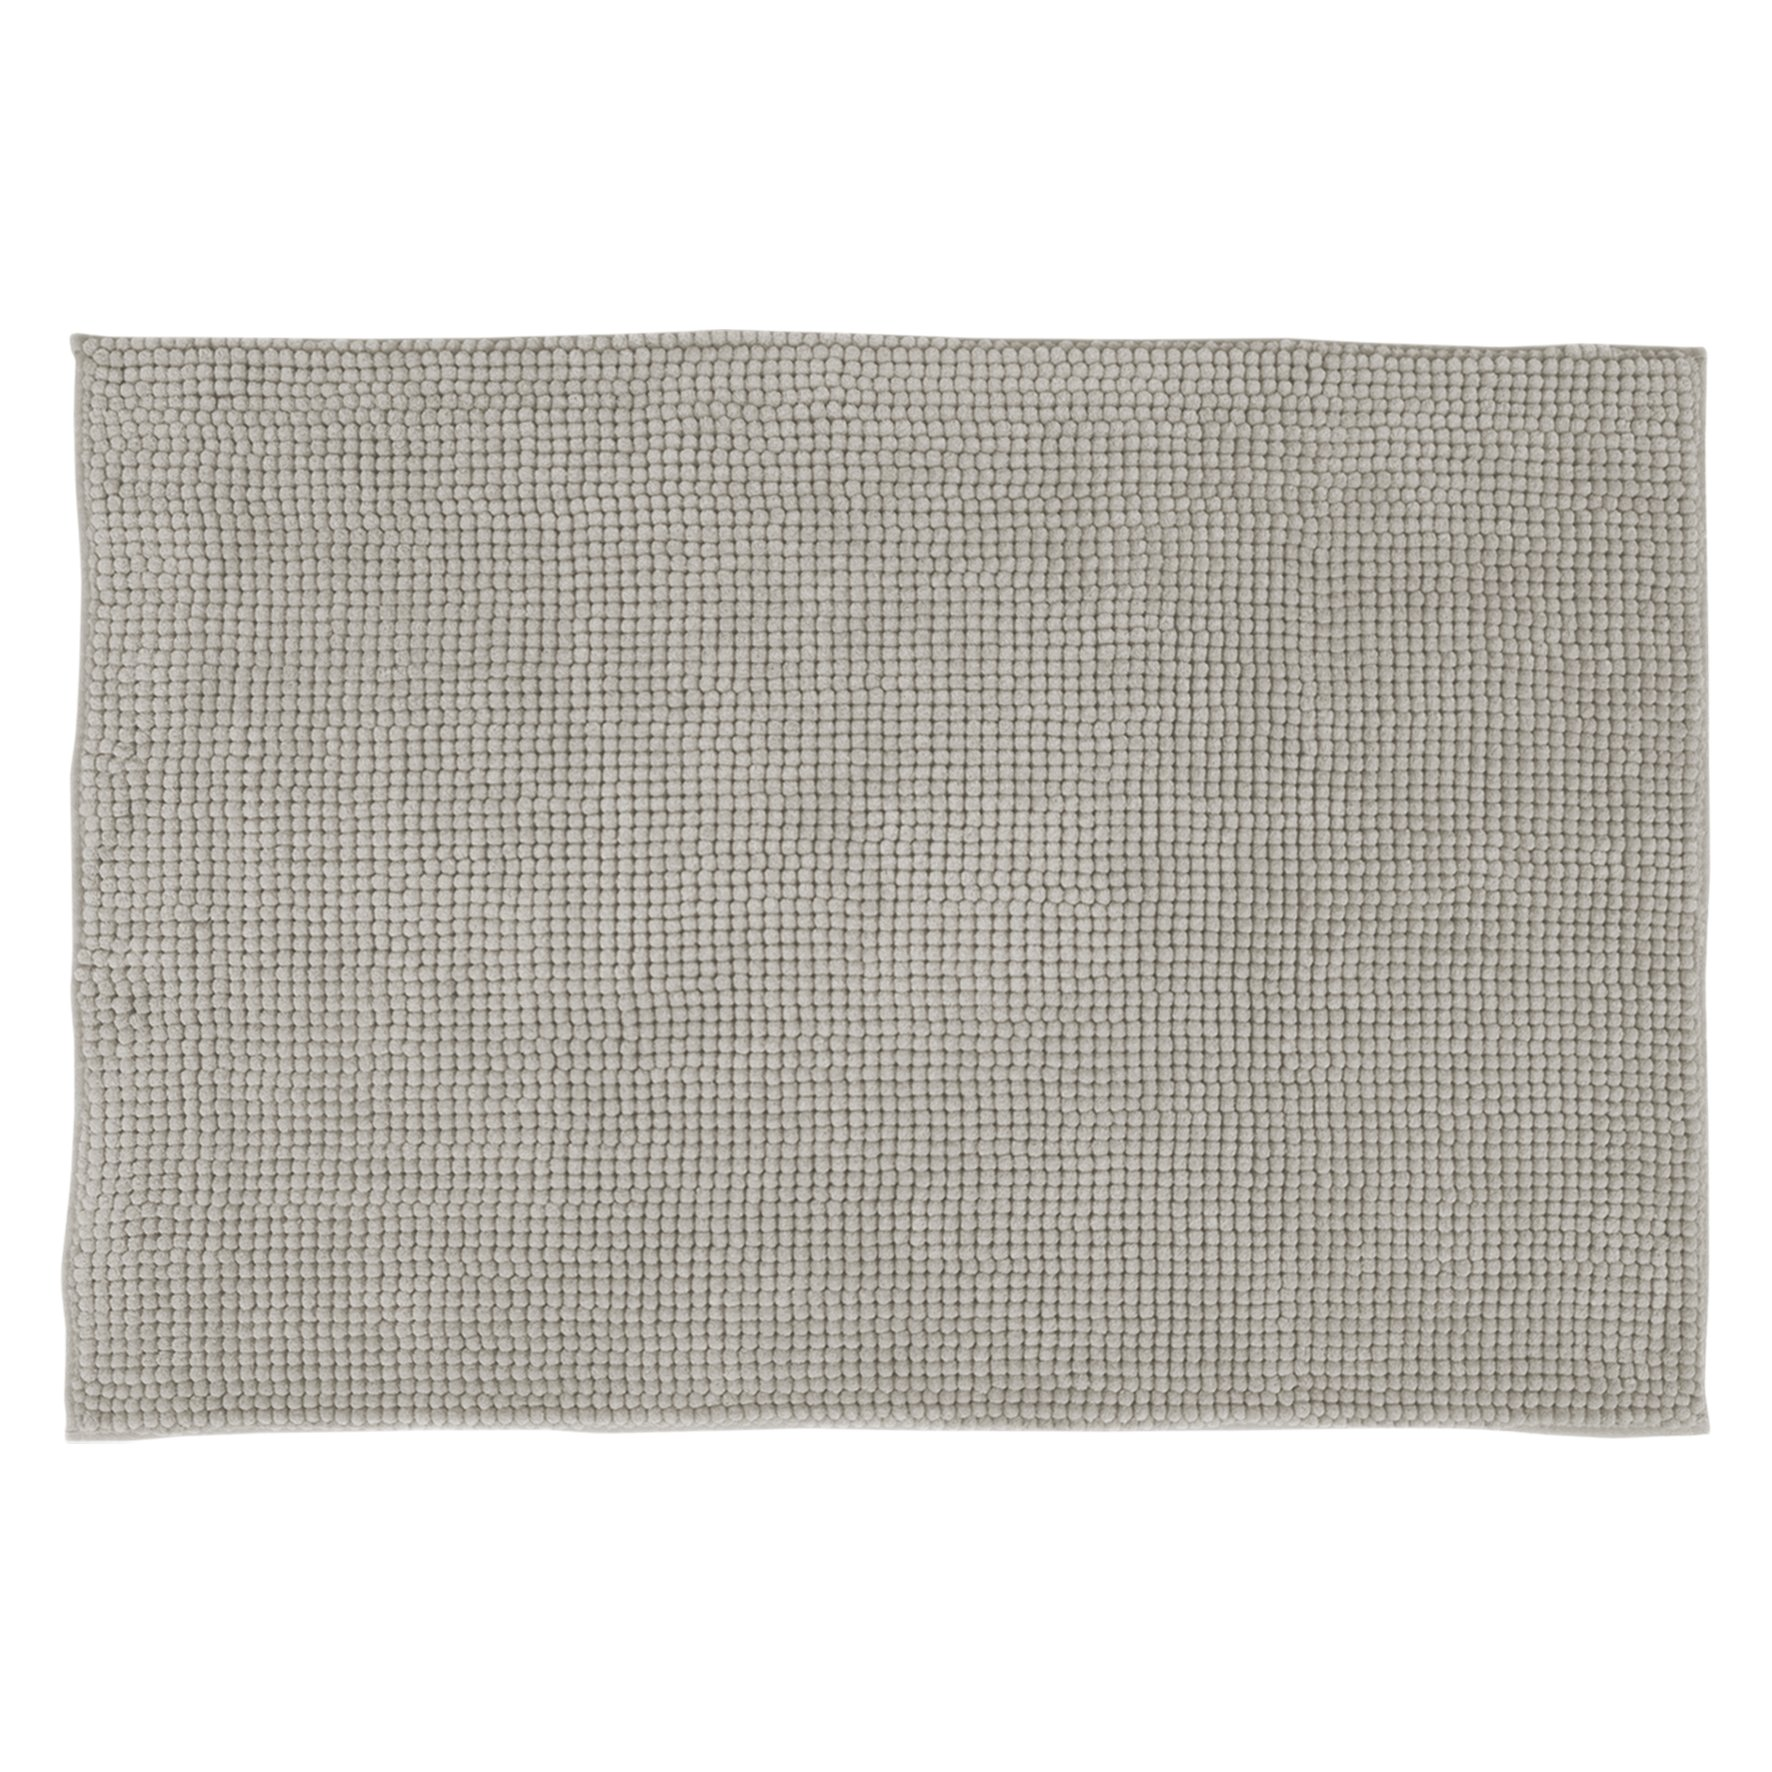 DIFFERNZ 31.110.02 Baru Bath Mat, Taupe by Differnz